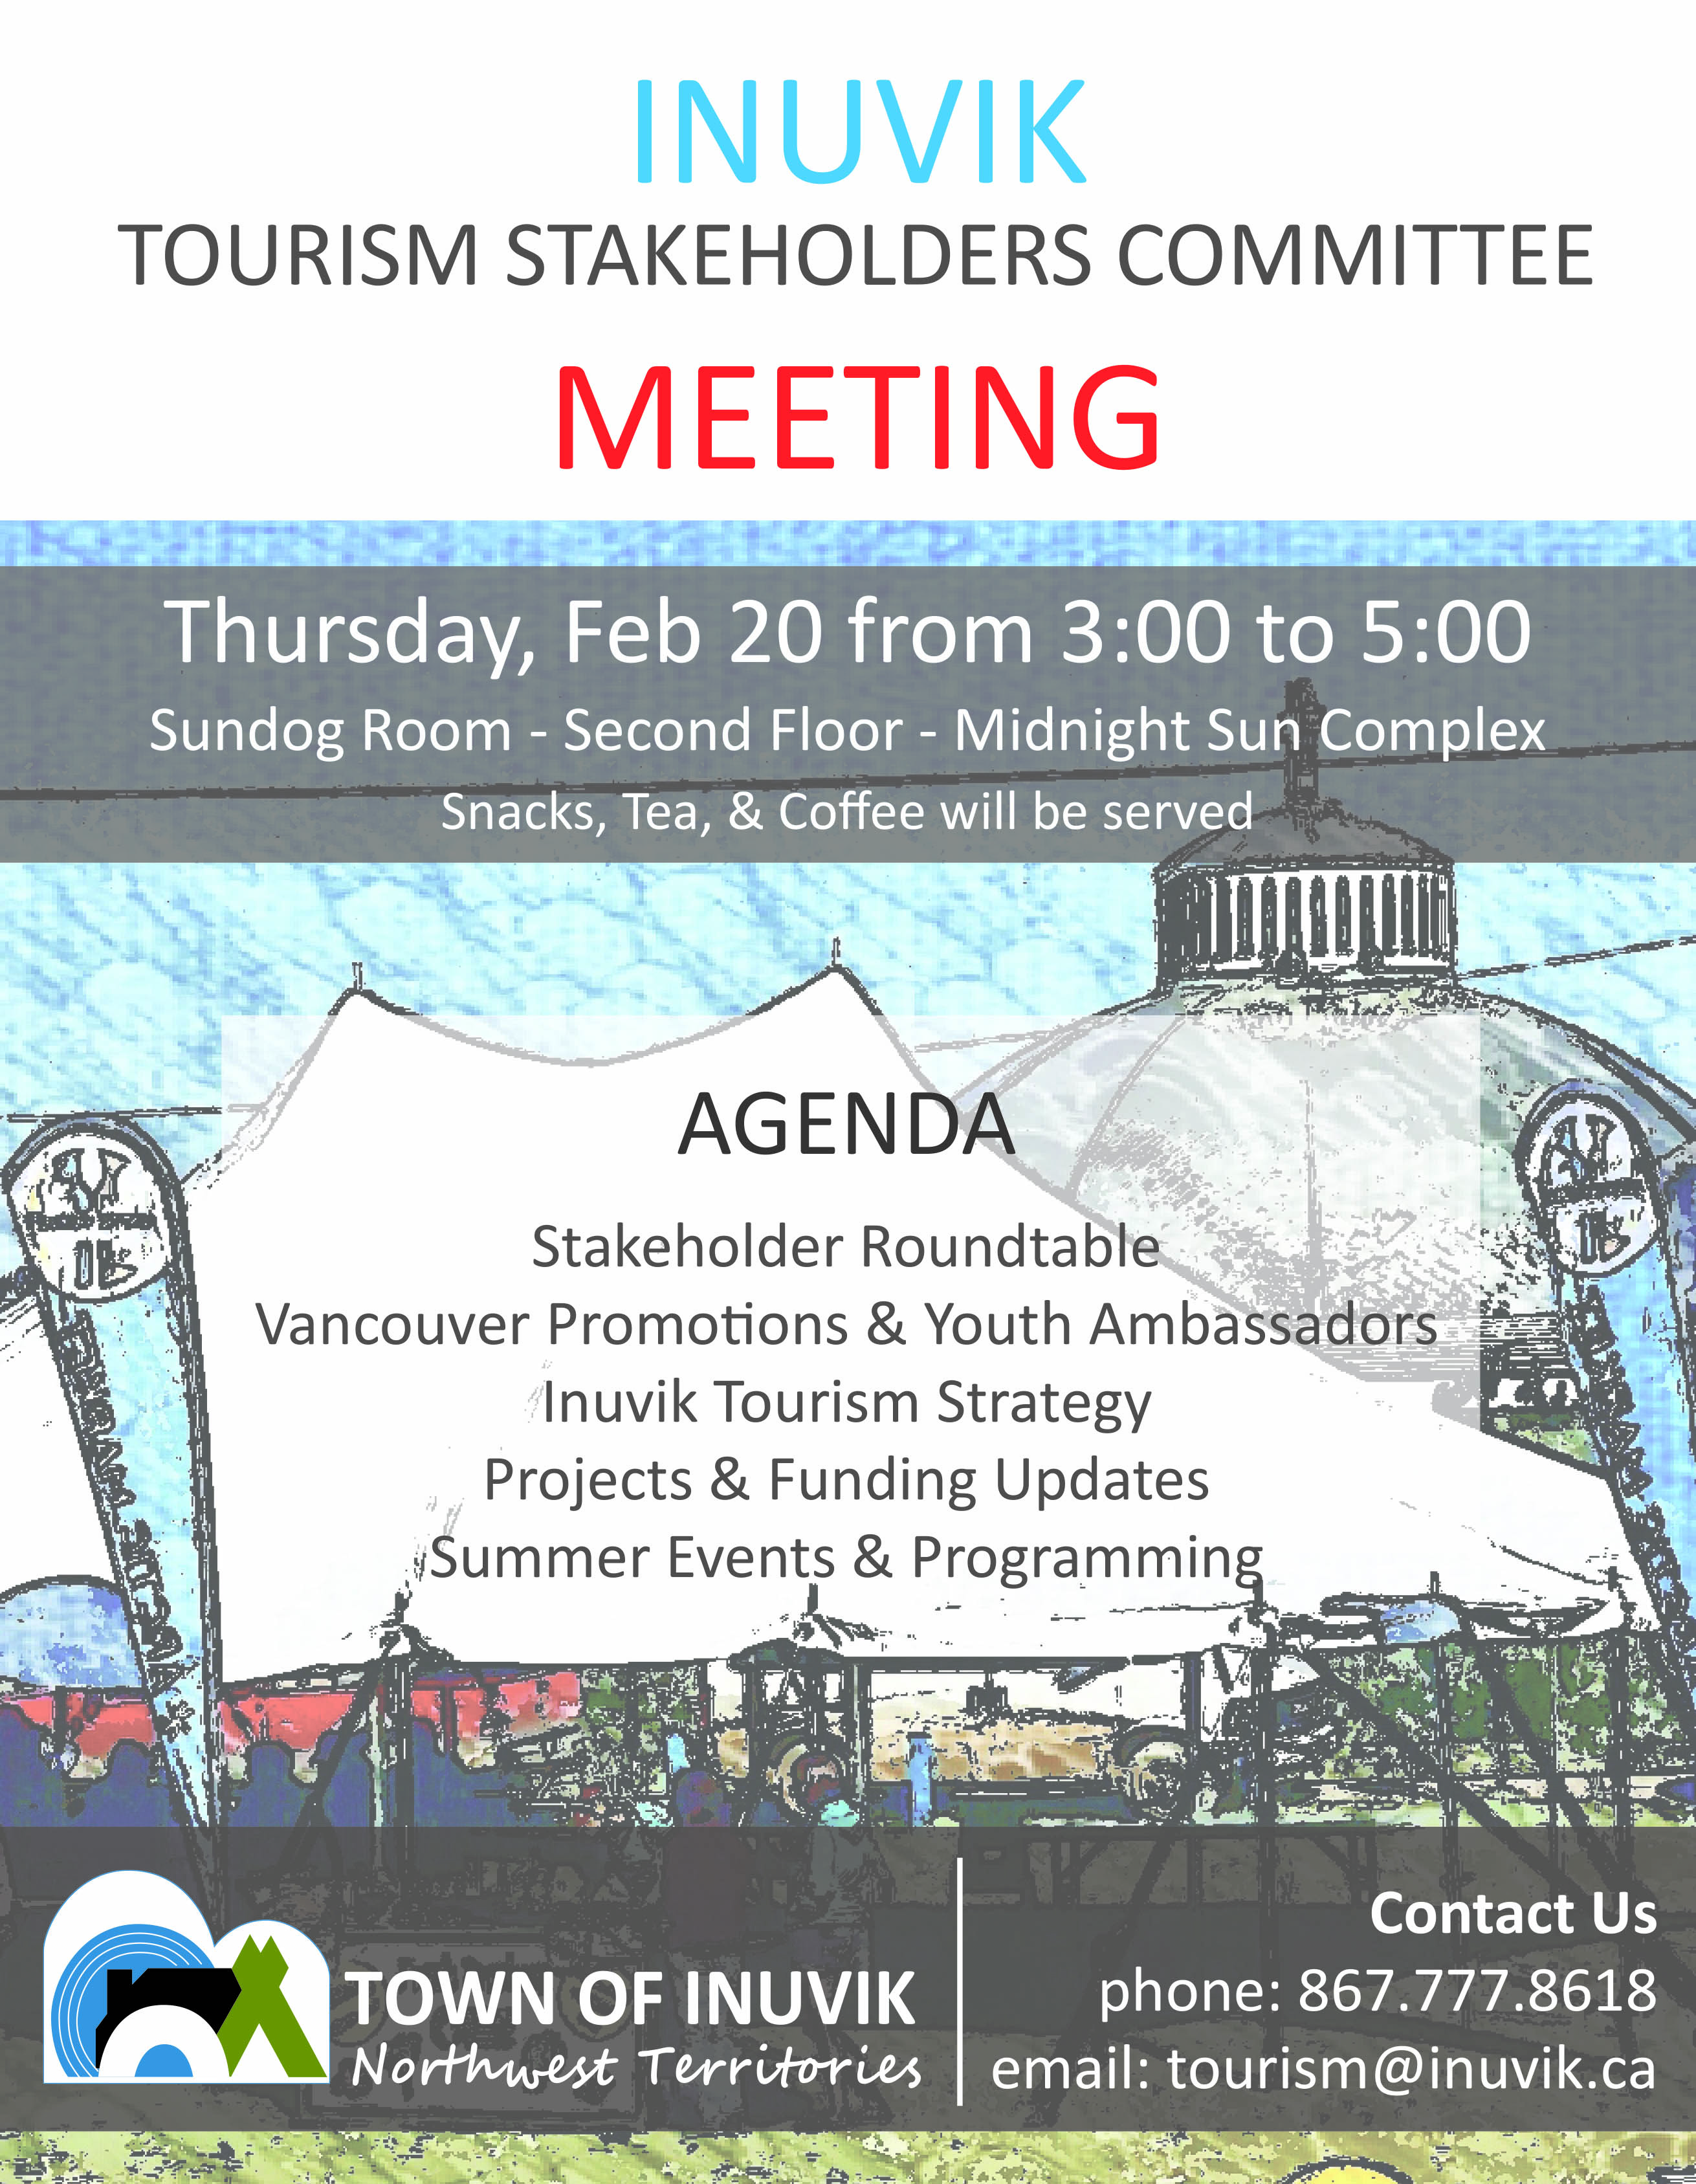 TourismStakeholderMeeting_Feb20